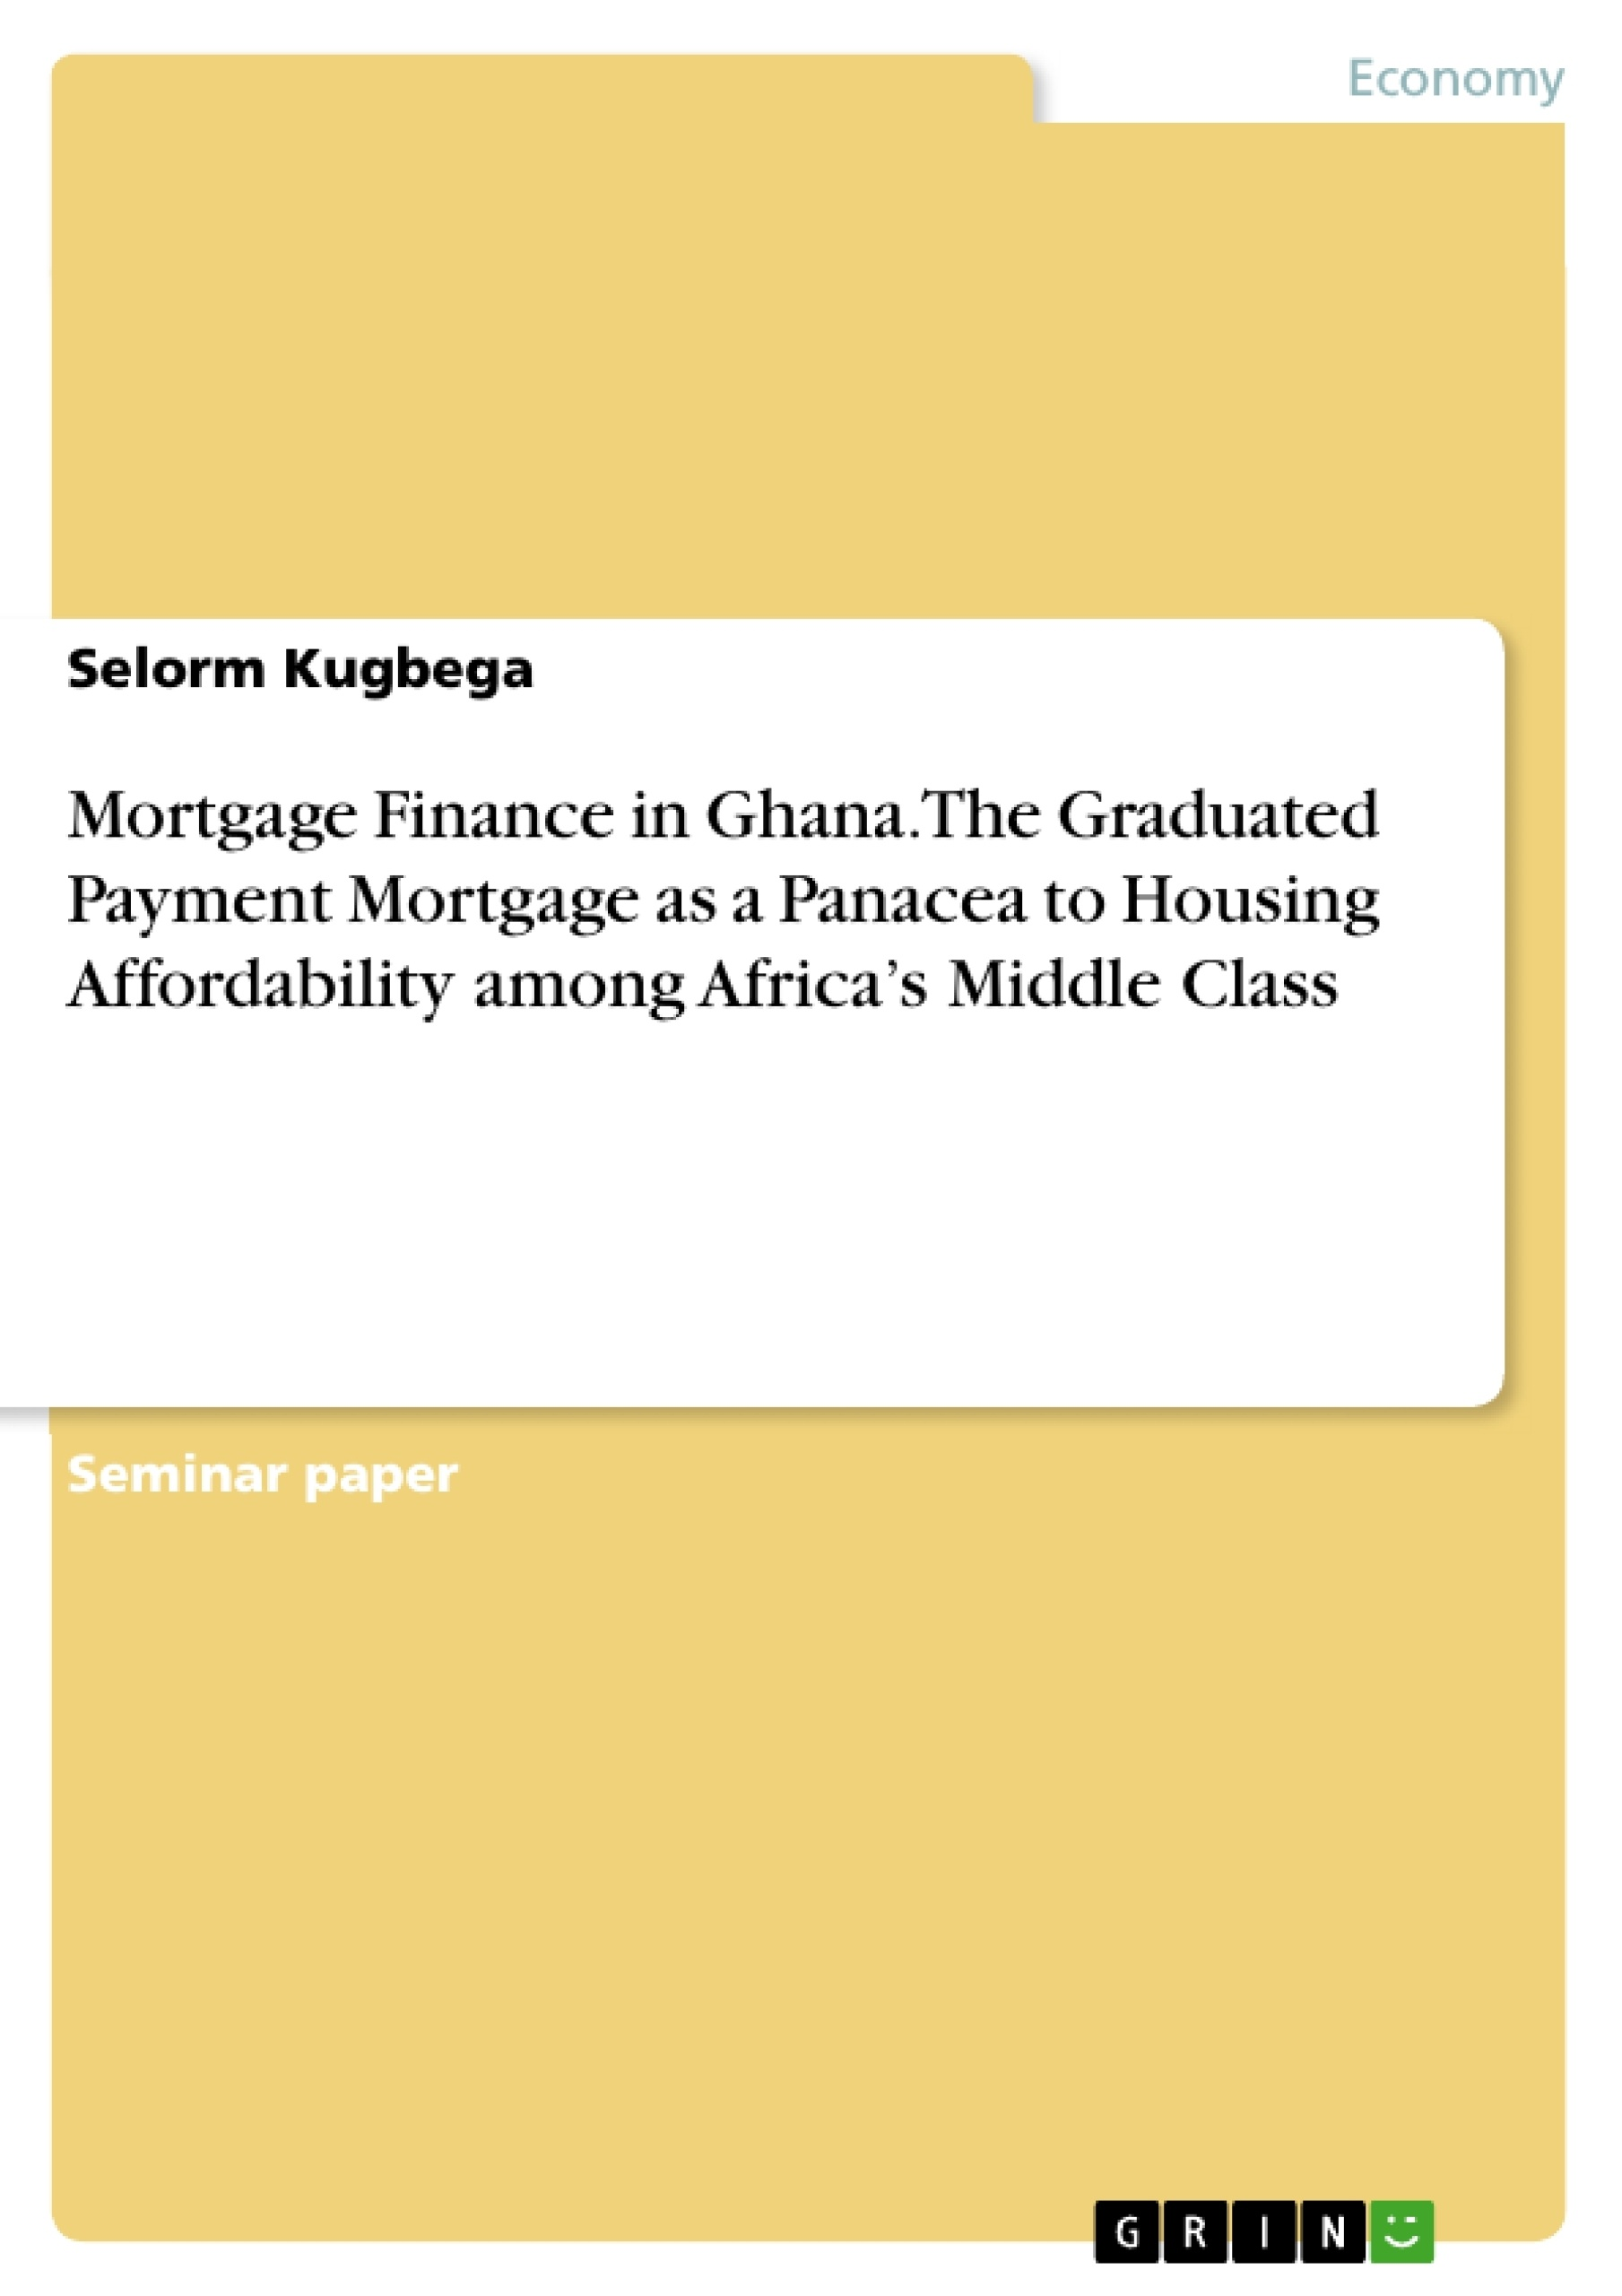 Title: Mortgage Finance in Ghana. The Graduated Payment Mortgage as a Panacea to Housing Affordability among Africa's Middle Class